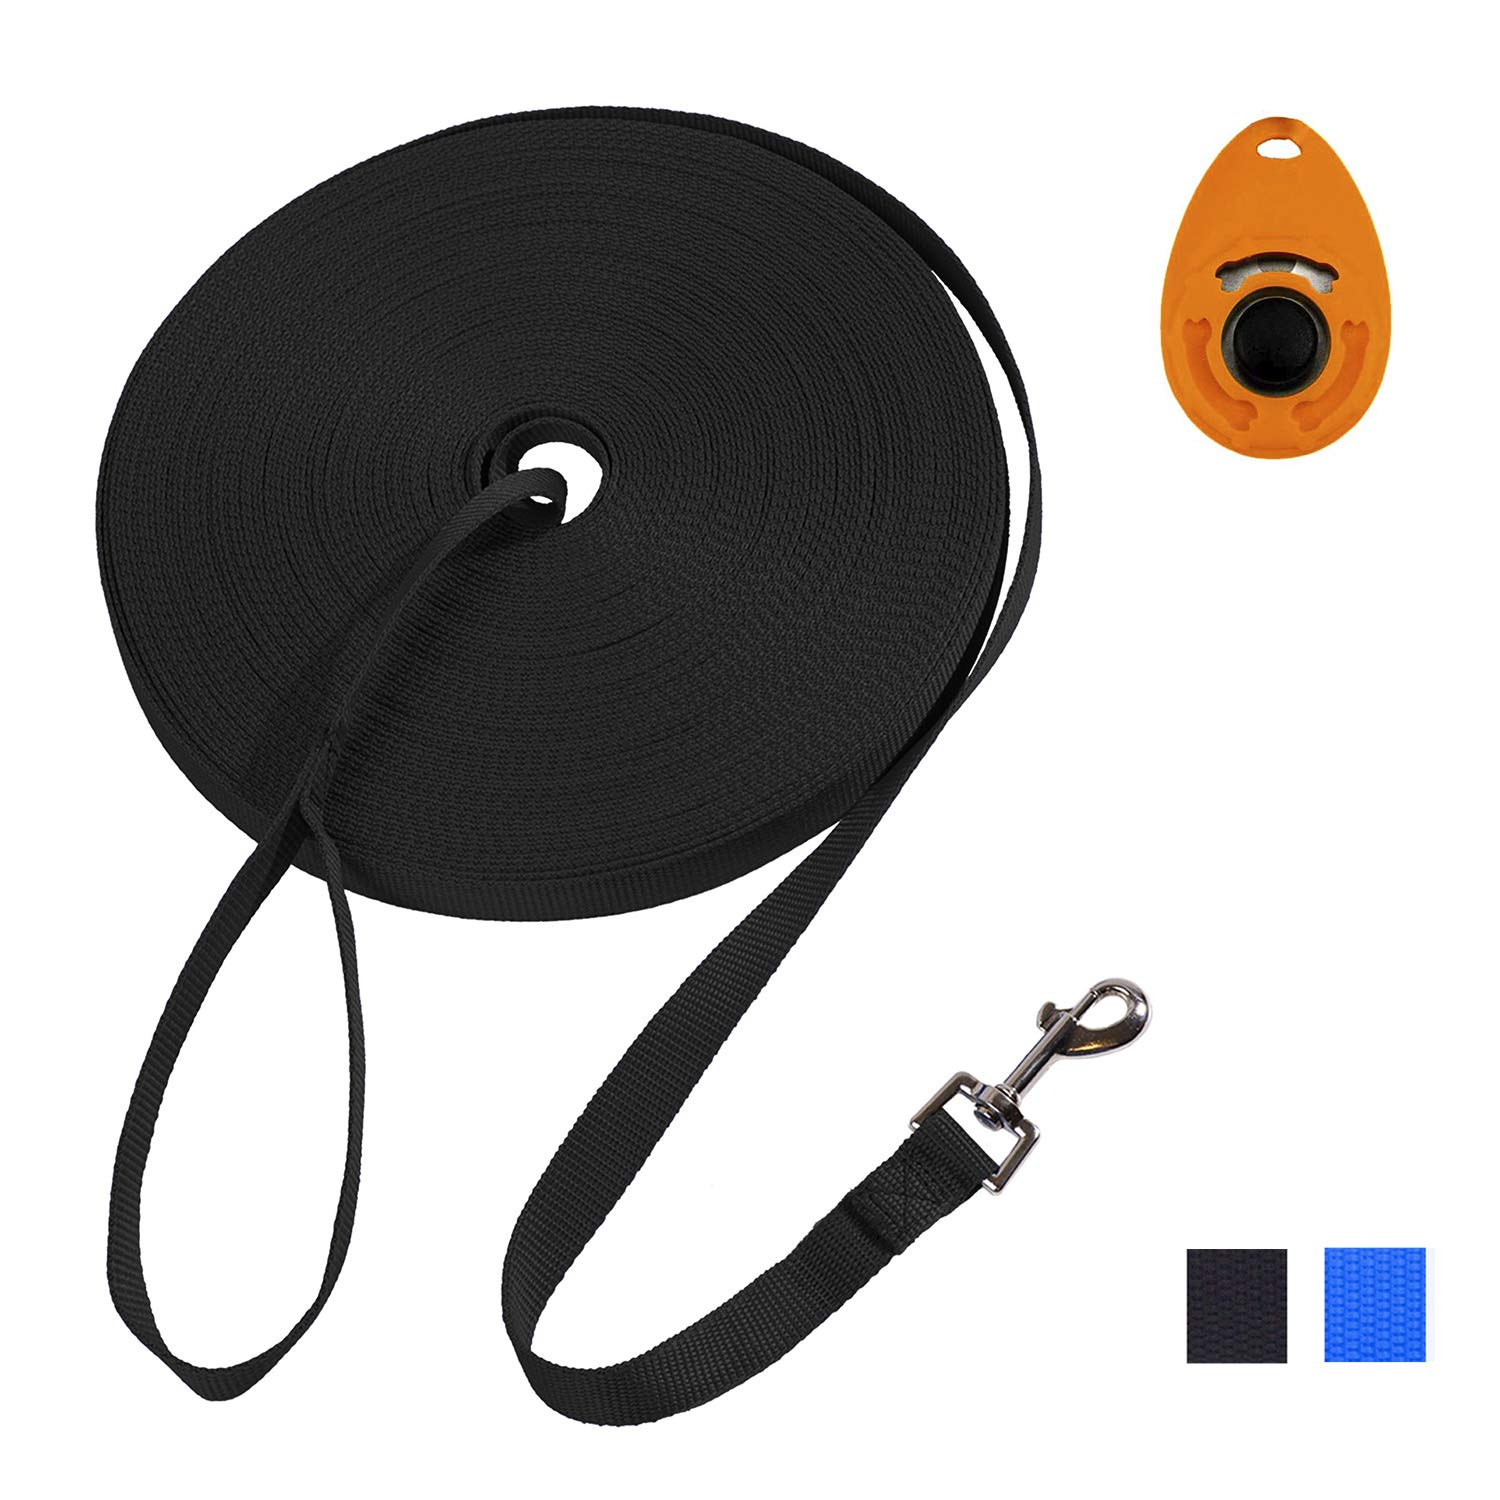 Hi Kiss 30ft 50ft 100feet Black Extra Long Line Training Dog Leash - for Large,Medium and Small Dogs - Long Lead - Great for Training, Play, Camping, or Backyard